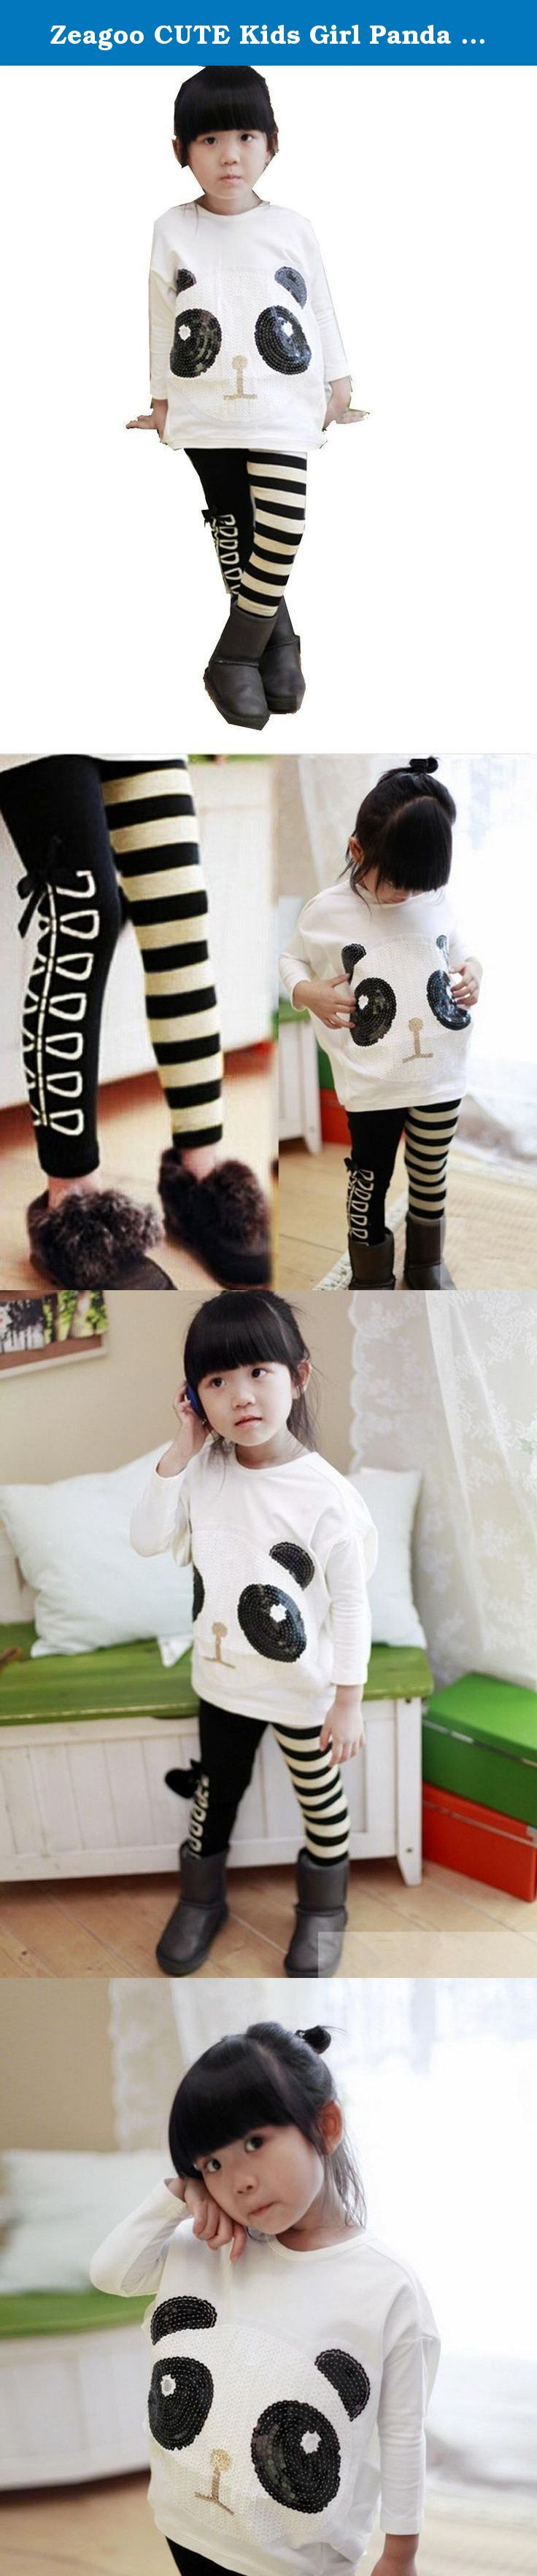 "Zeagoo CUTE Kids Girl Panda Over Hip T-Shirt Batwing Top+ White Black Striped Leggings. 100% Brand New. Material: Cotton Blend Color: Black+ White Collar: O-neck Department Name: Baby Girls Sleeve style: Batwing sleeve Tops Measurement: Tag. NO 100-----Recommend Height 90-100cm-----Recommend age 2-3Y -----Length 14.04""-----Bust 35.1"" Tag. NO 110-----Recommend Height 100-110cm-----Recommend age 3-4Y -----Length 14.82""-----Bust 35.88"" Tag. NO 120-----Recommend Height 110-120cm-----Recommend..."